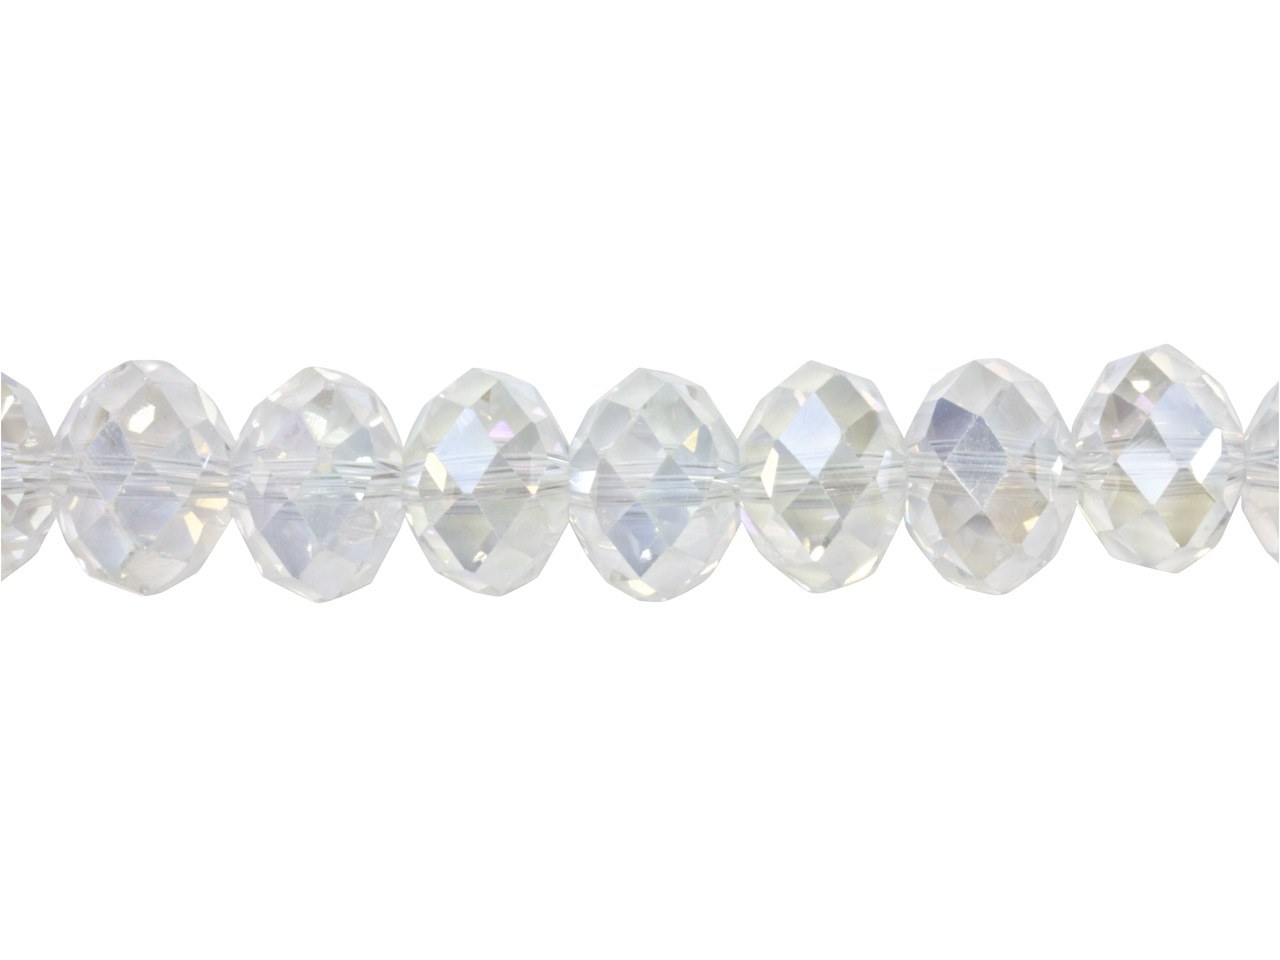 Crystal Faceted Rondelle Clear Ab  10x14mm Beads, 16